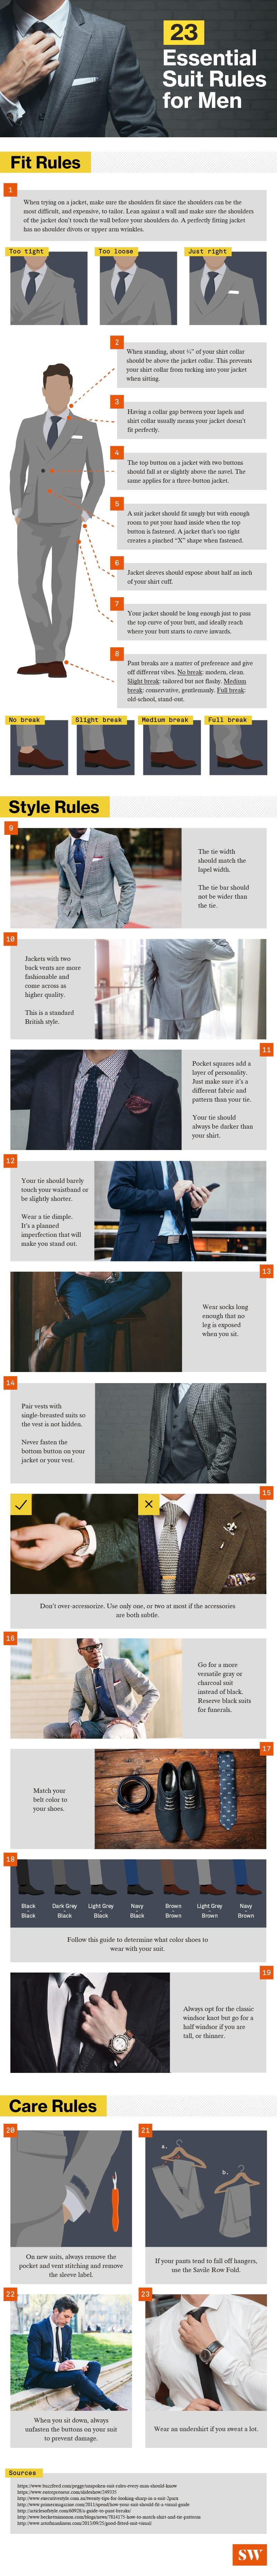 suit fitting guide